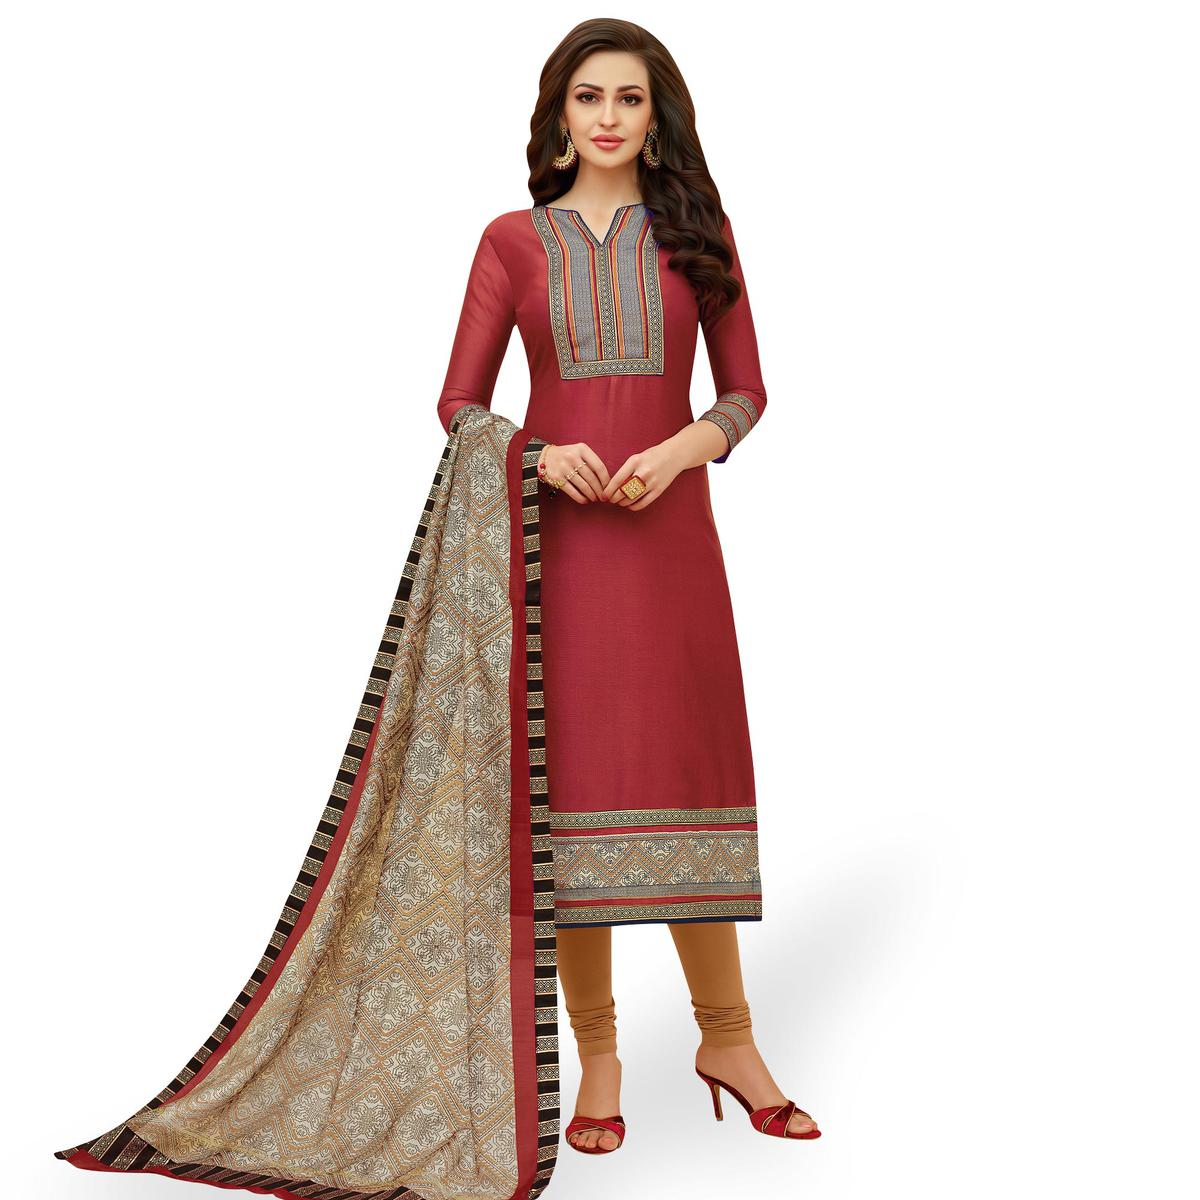 Captivating Red Colored Casual Printed Cotton Suit